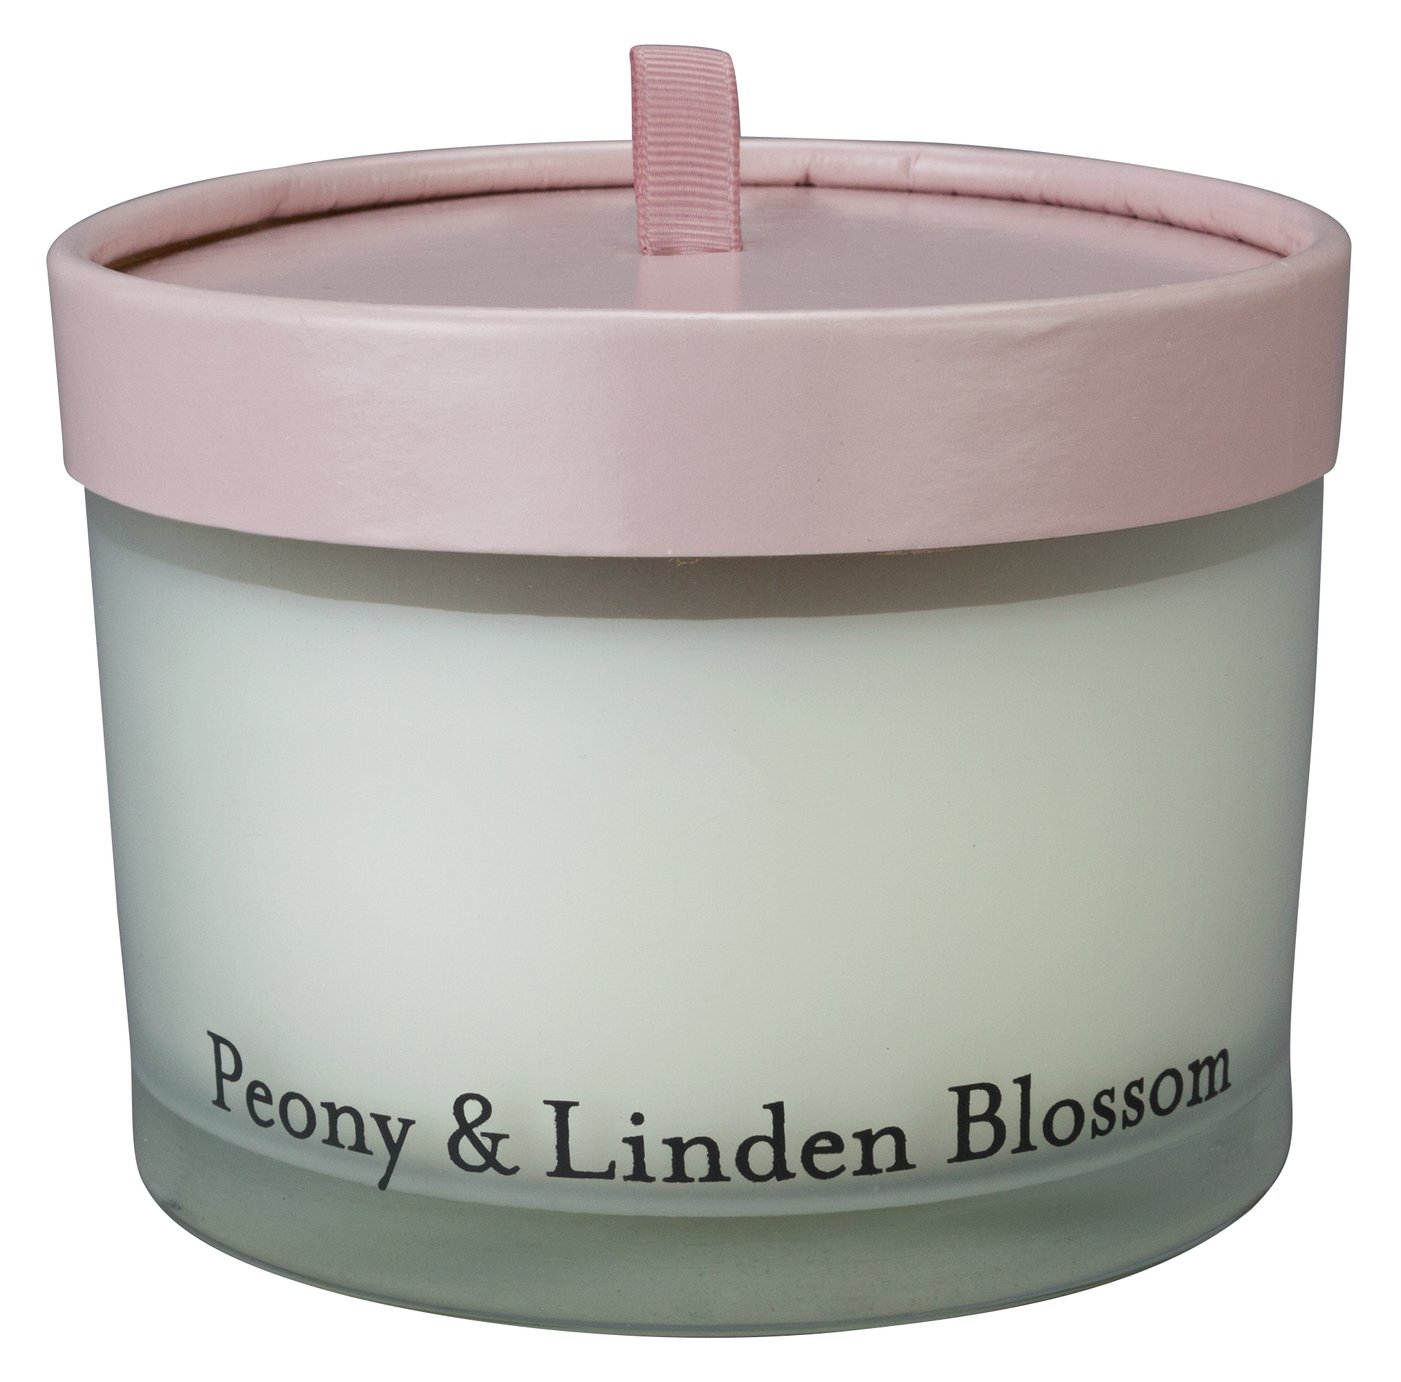 Multiwick Candle - Peony & Linden Blossom